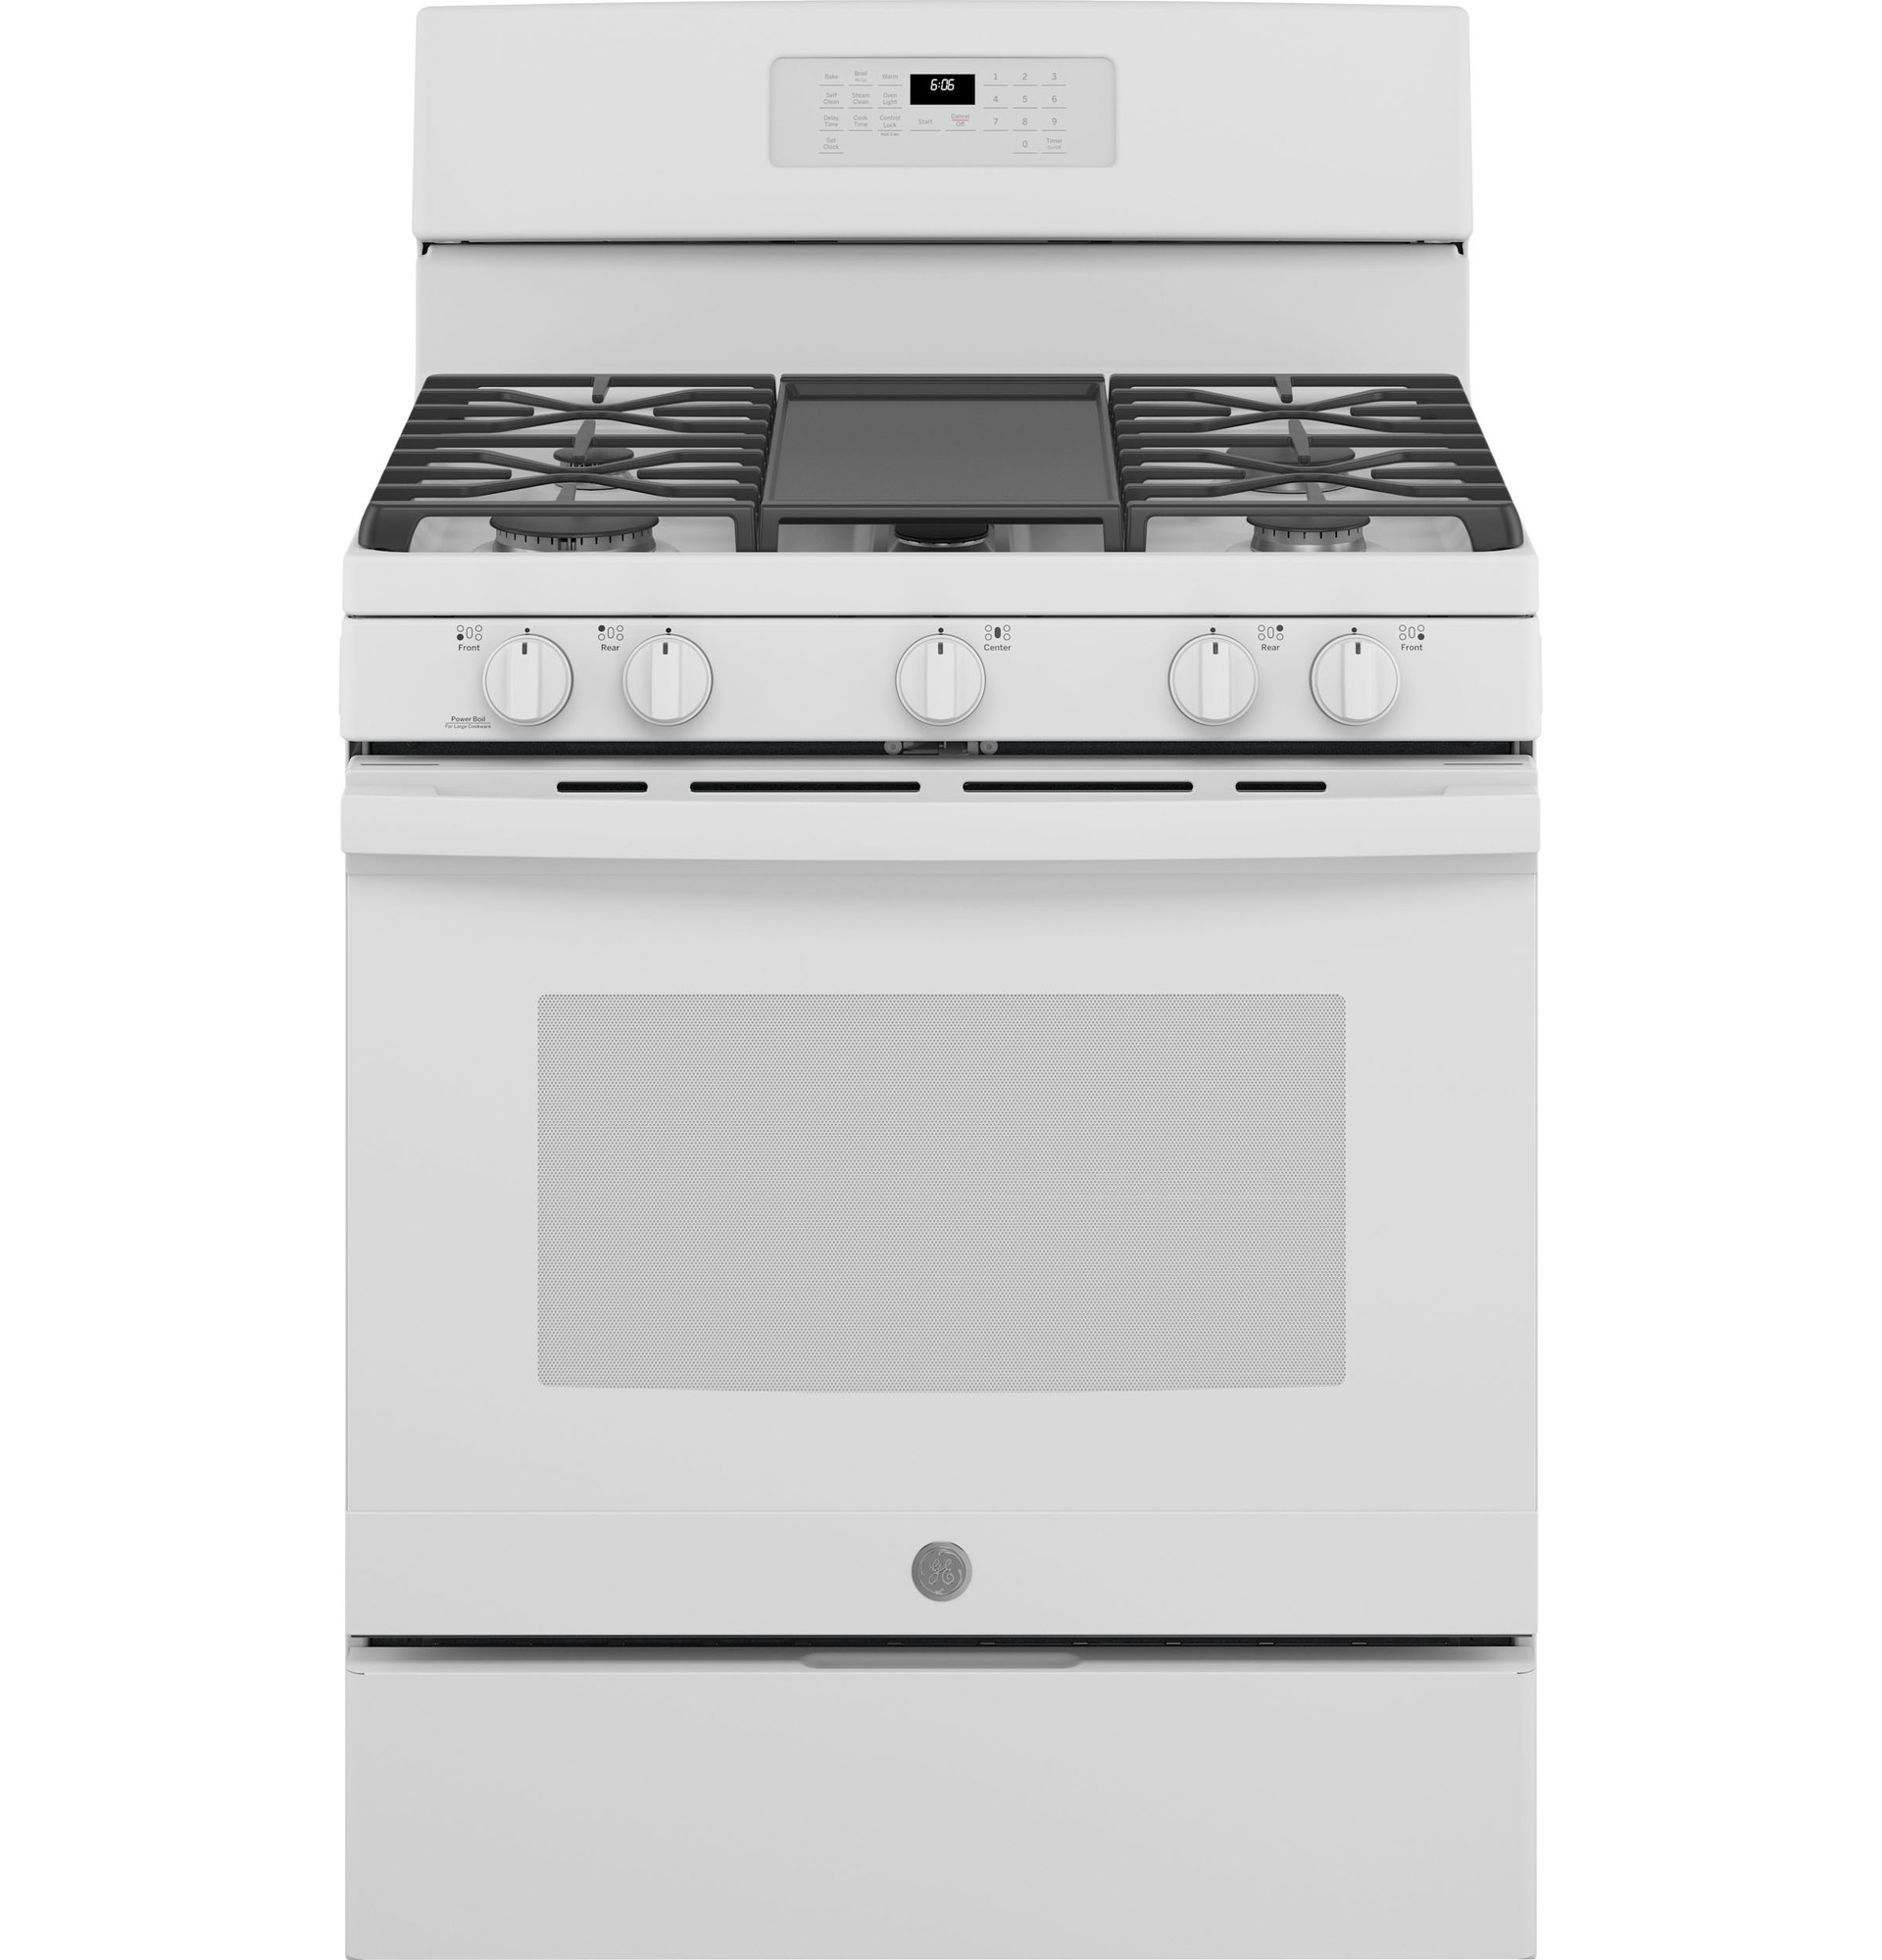 GE Range JCGB660DPWW in White color showcased by Corbeil Electro Store